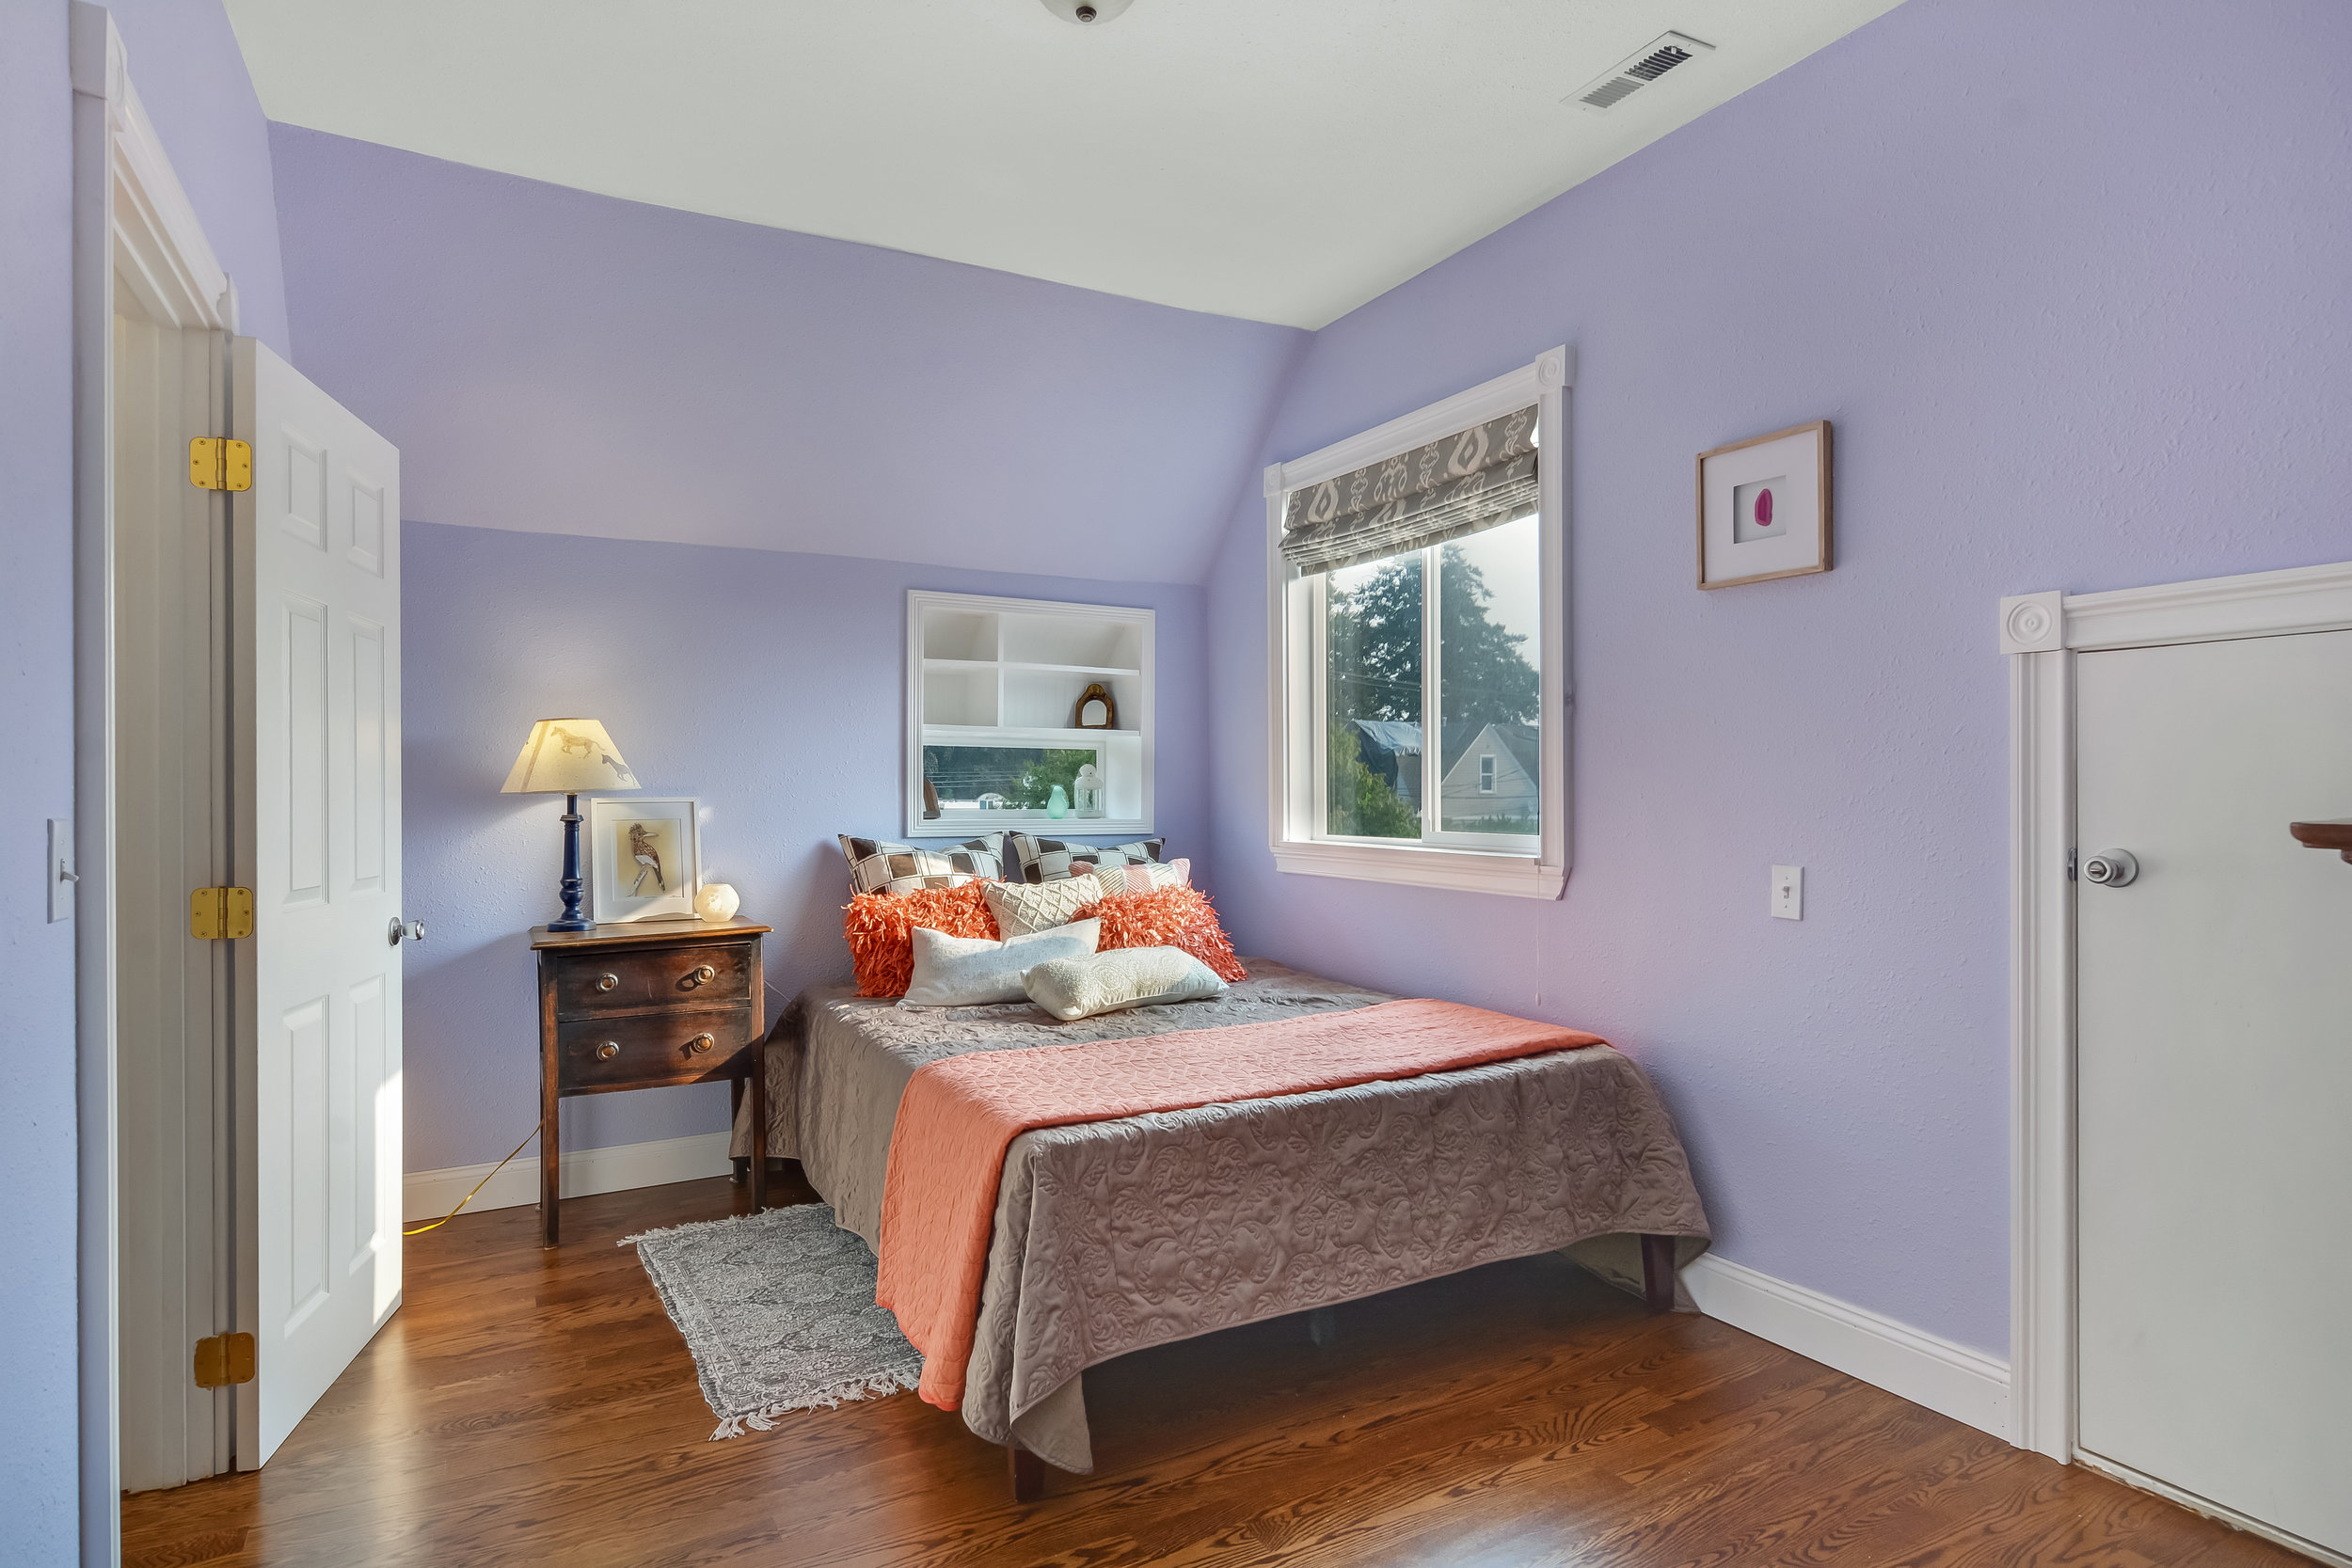 The second upstairs bedroom includes a door into a storage area (on the right). Don't miss the built-in shelf and tiny window above the head of the bed. So pretty!